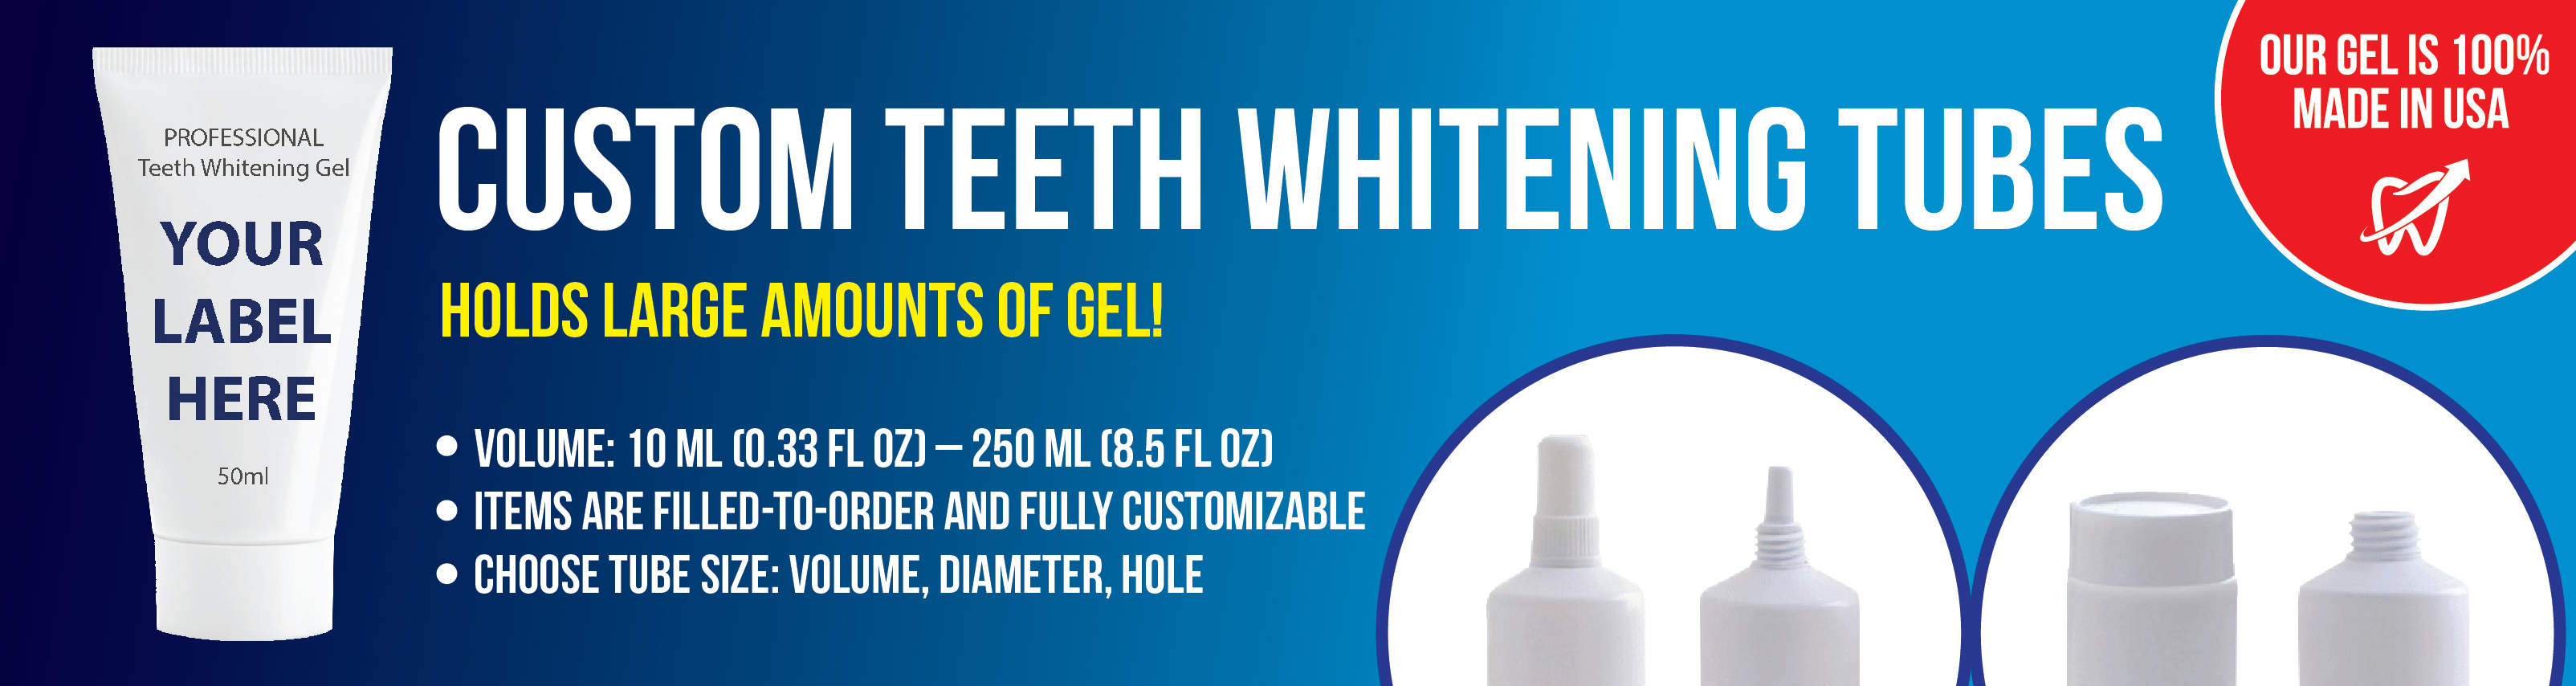 Teeth Whitening Tubes Main Banner